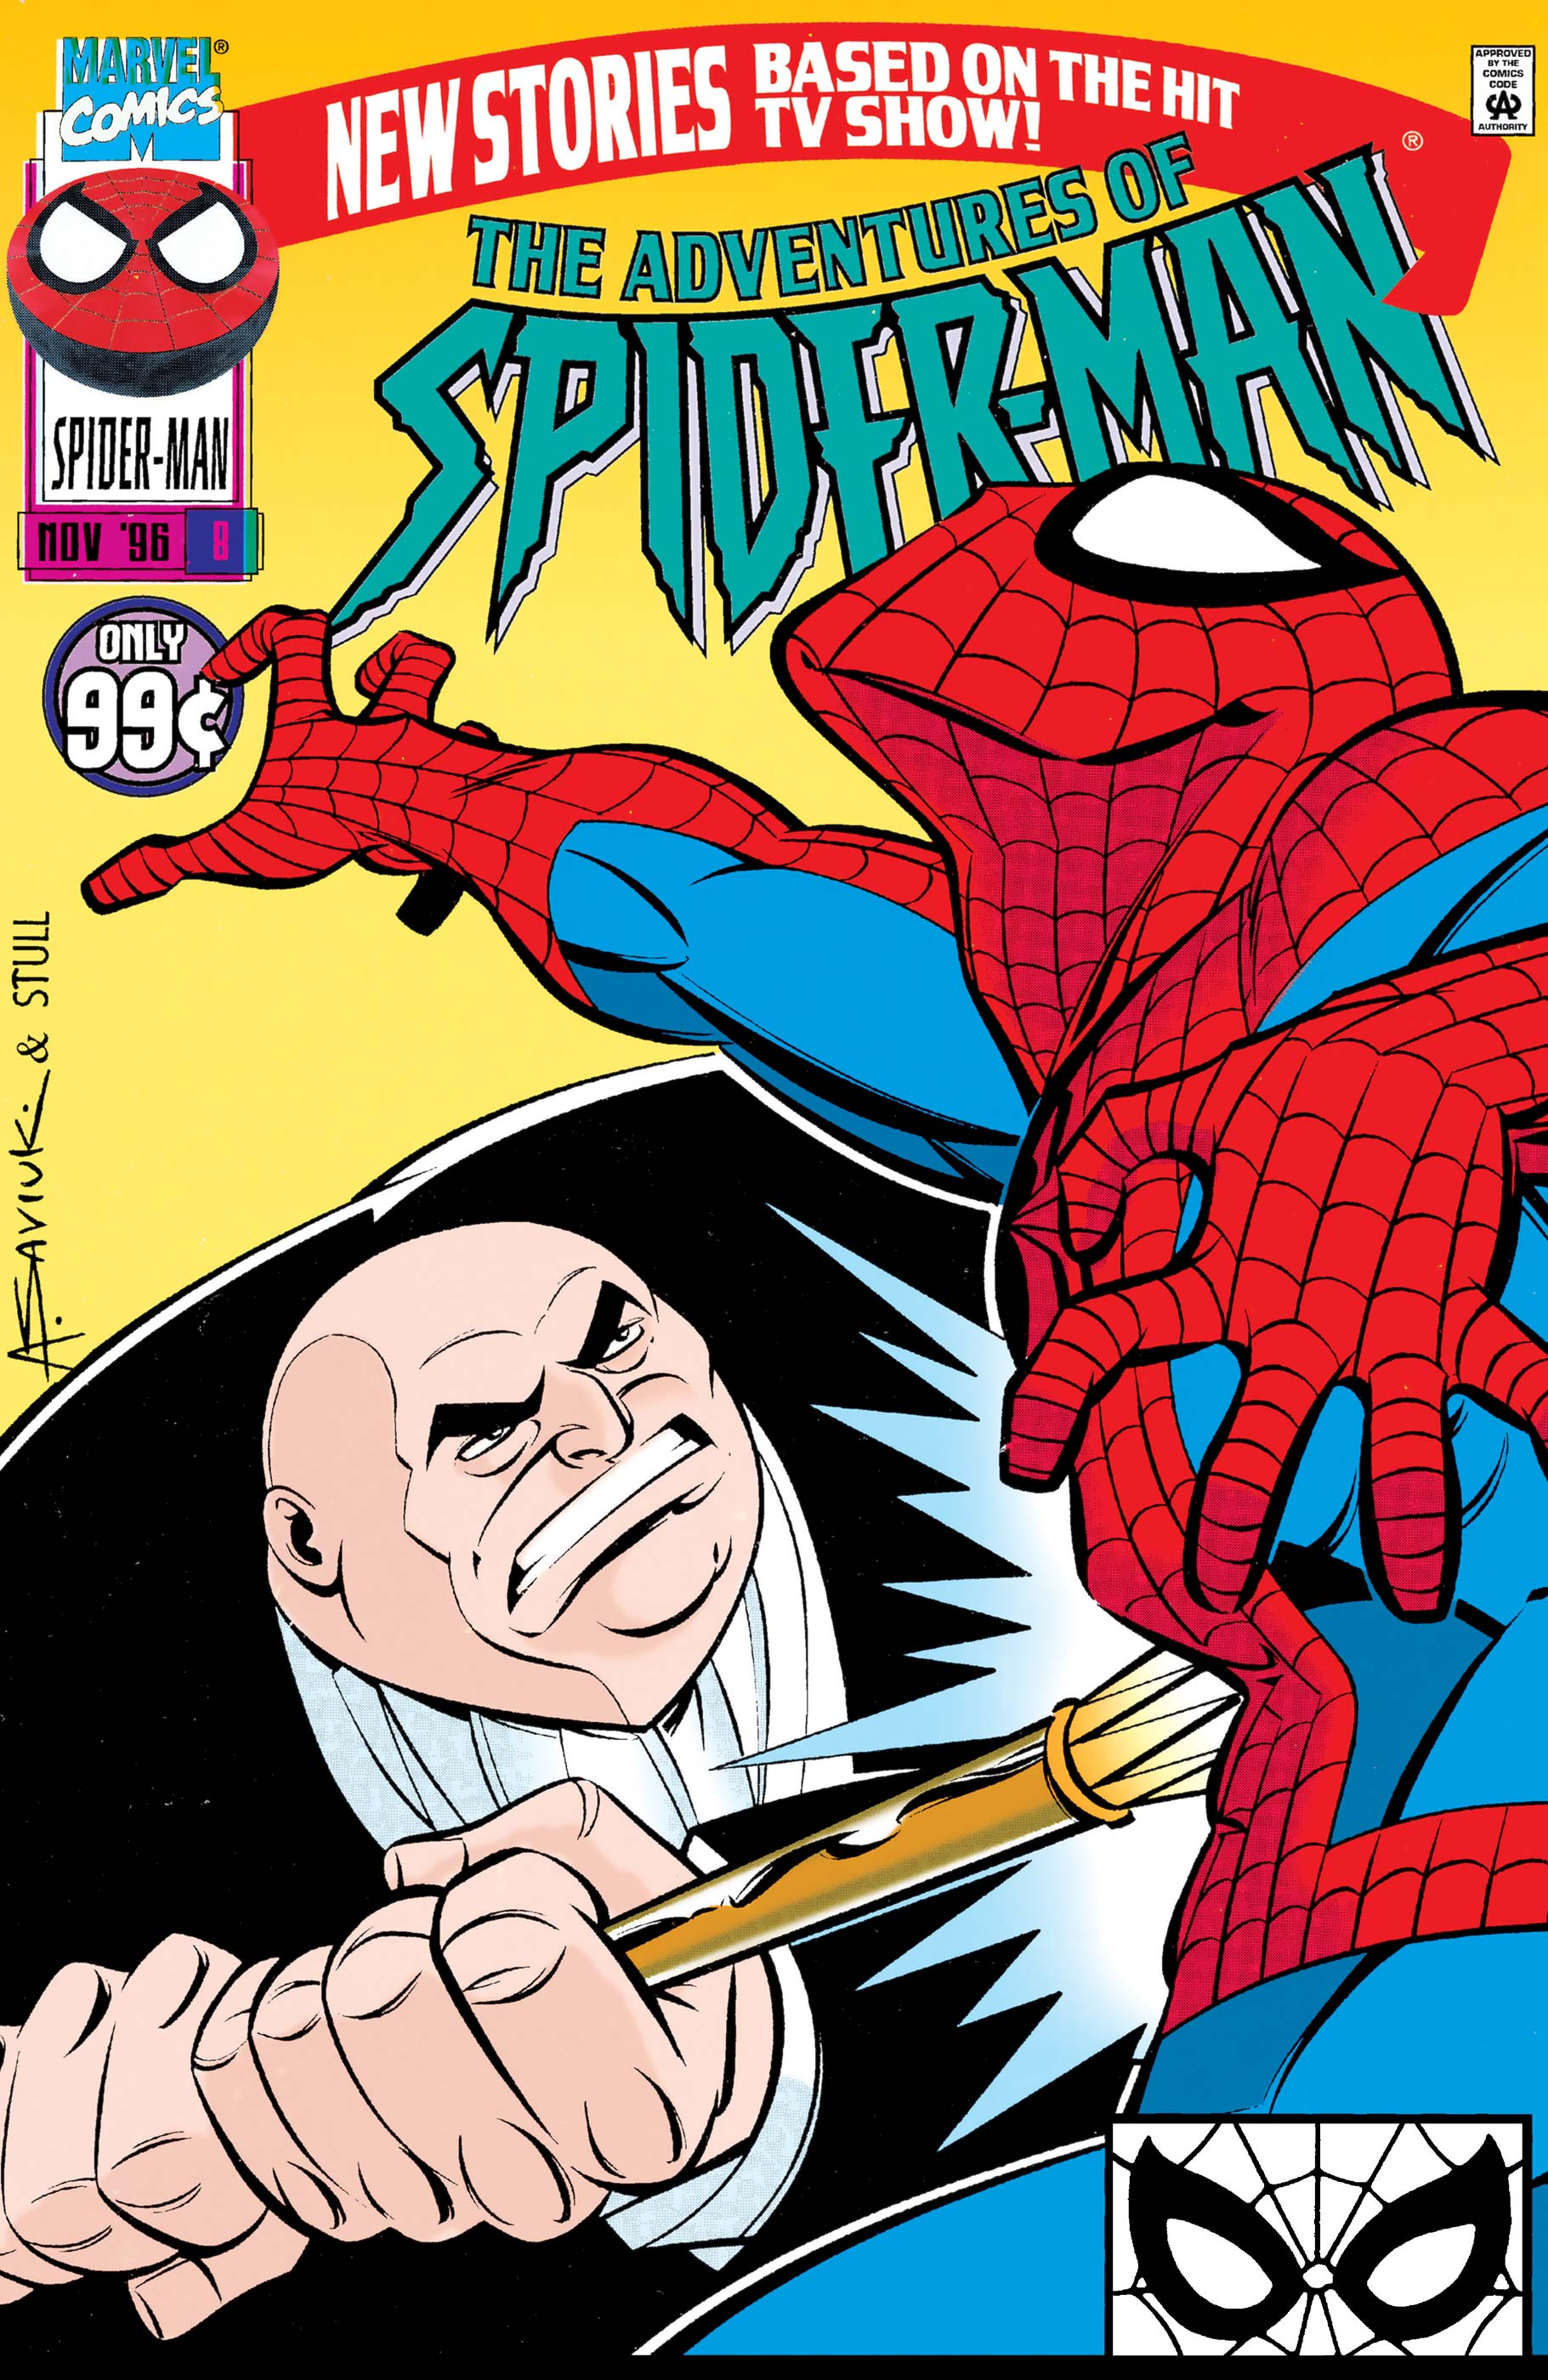 Adventures of Spider-Man (1996) #8